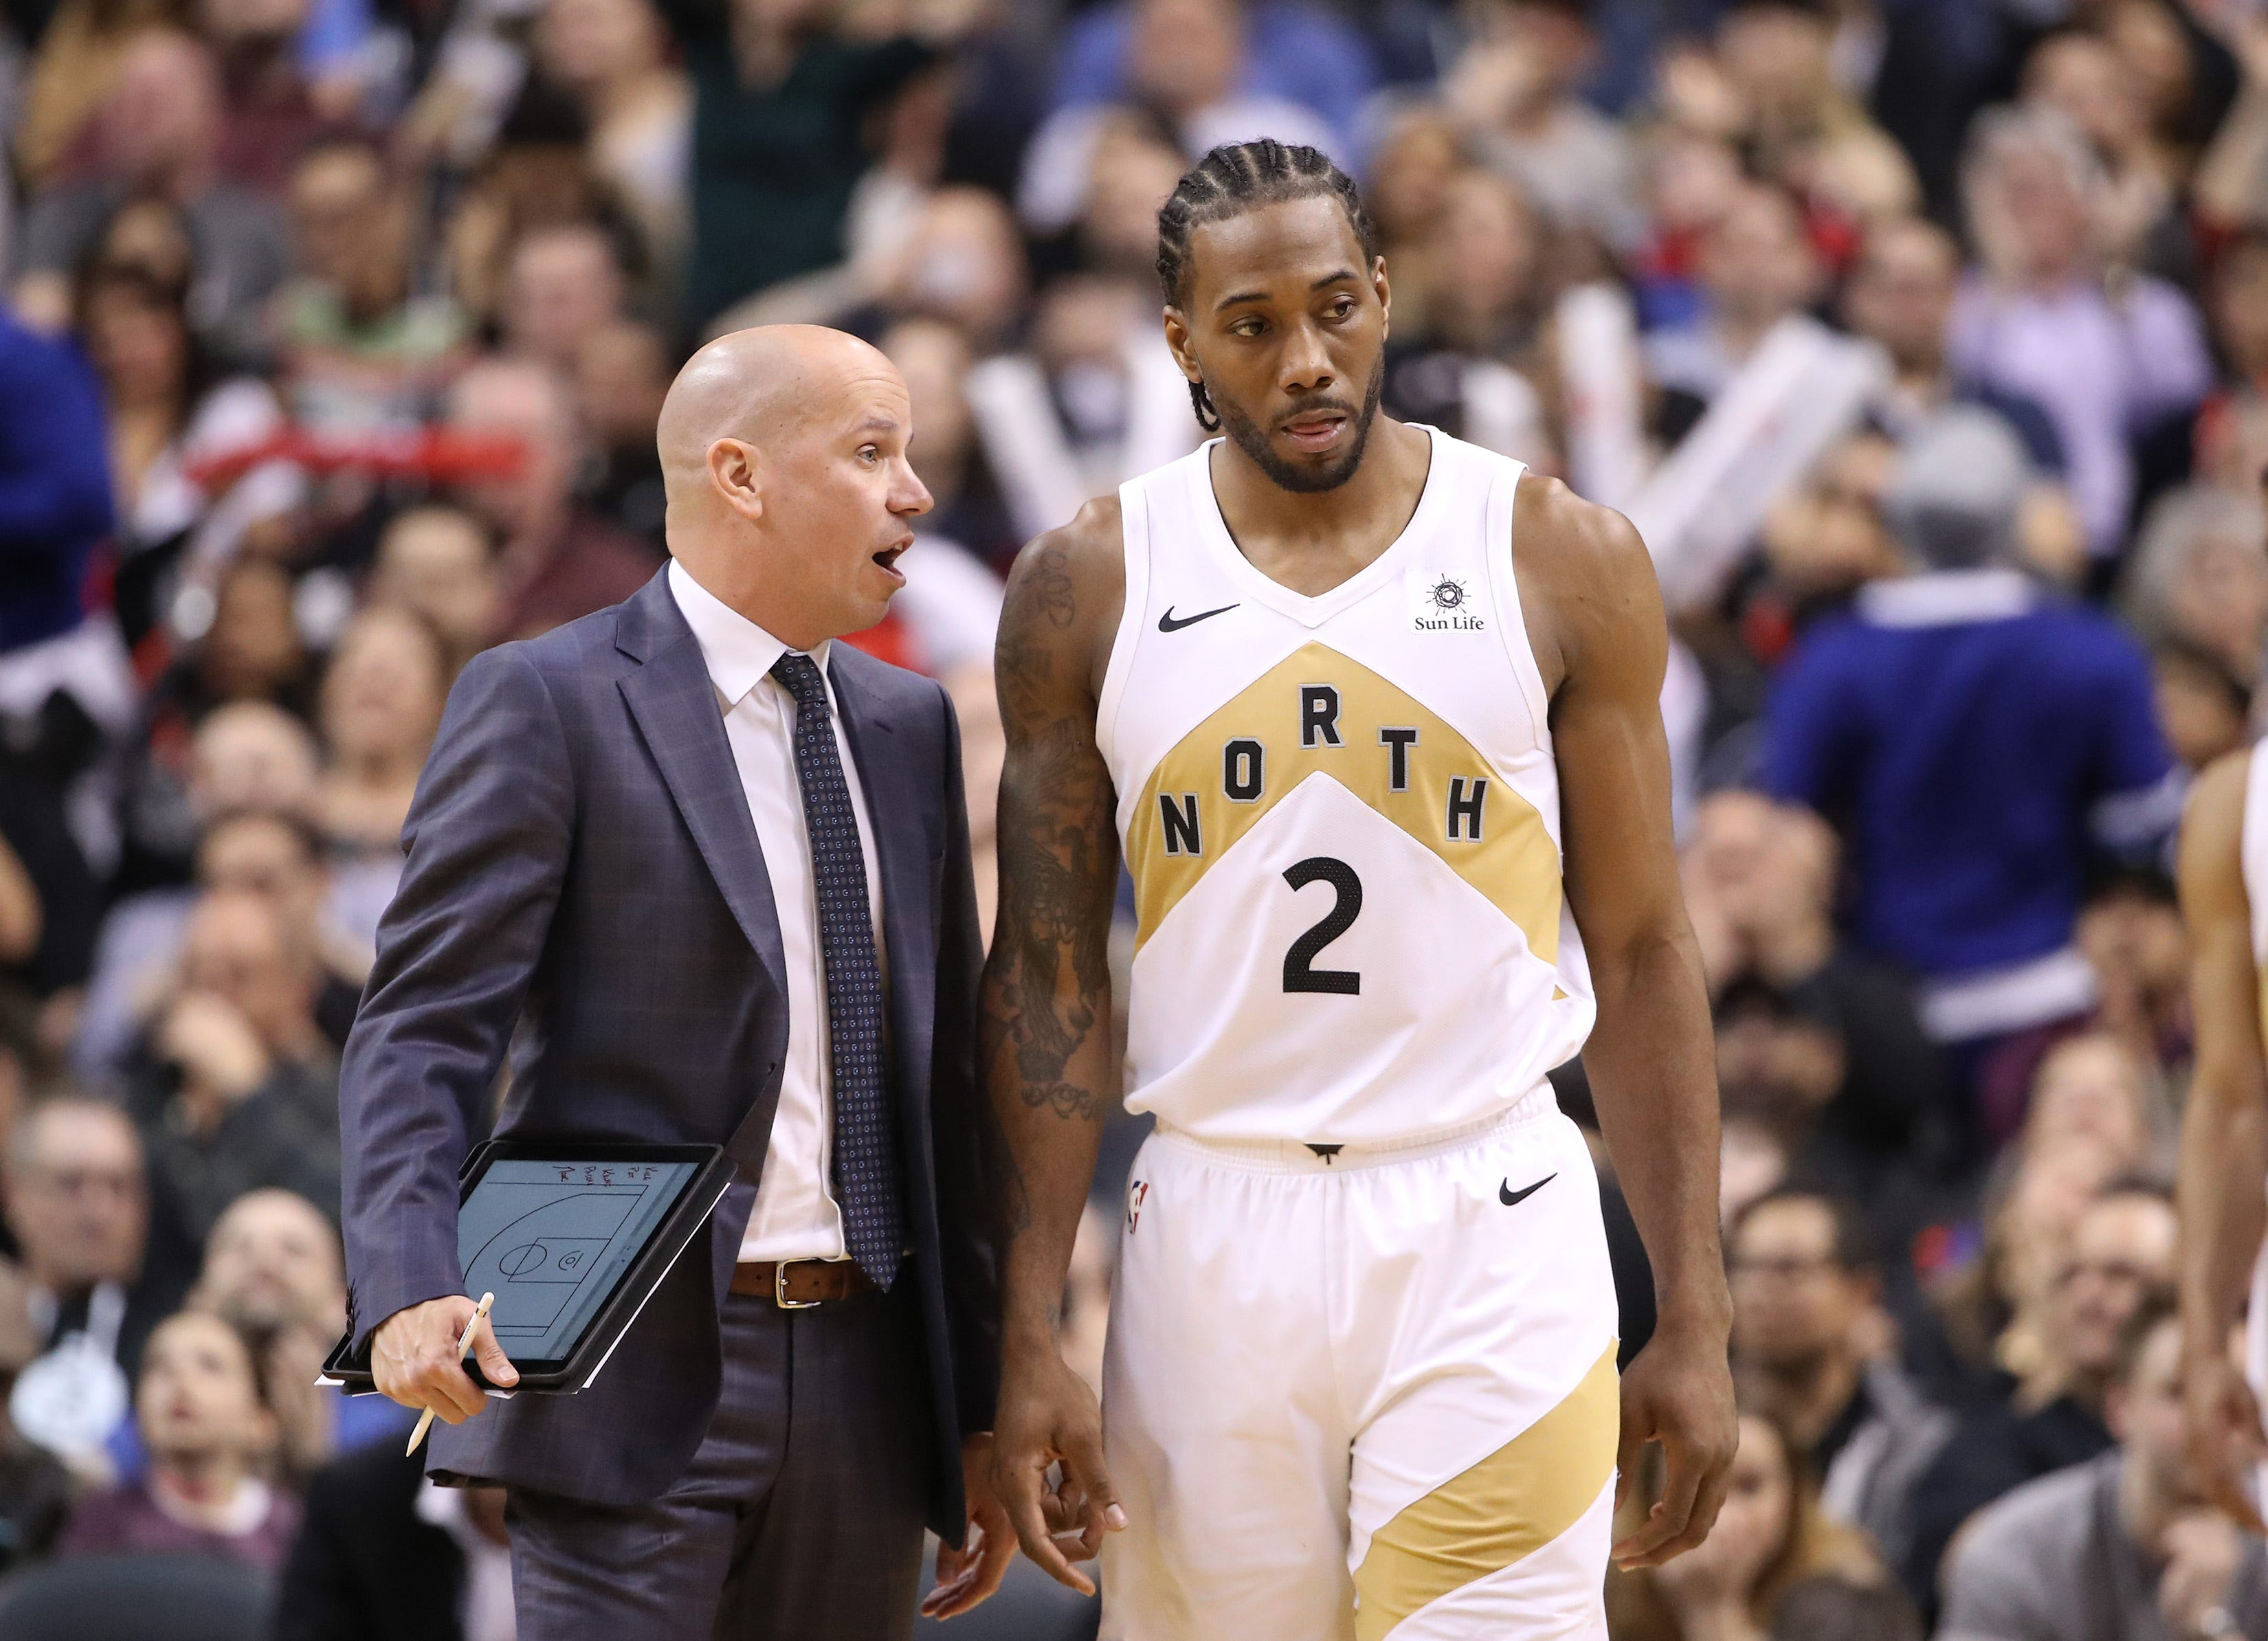 Indiana Pacers to hire Toronto Raptors assistant Nate Bjorkgren as new head coach